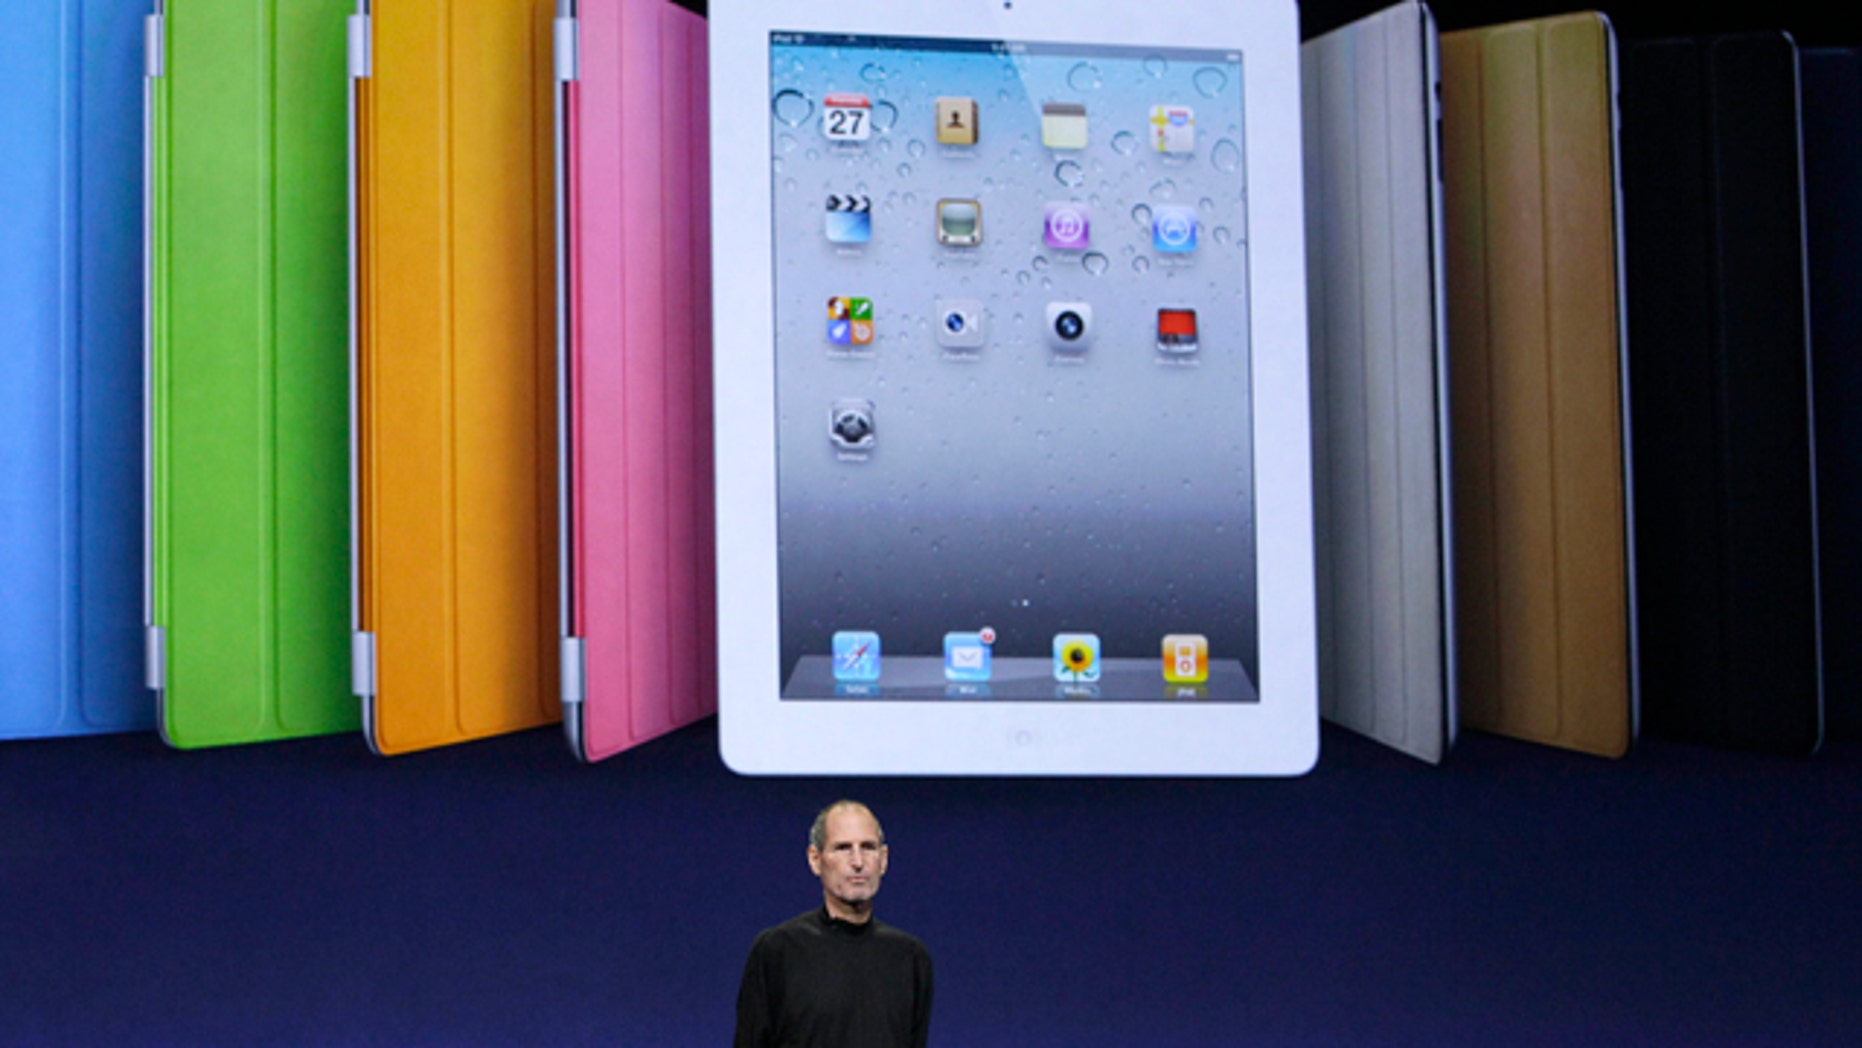 Apple chairman and CEO Steve Jobs stands under an image of the iPad 2 at an Apple event at the Yerba Buena Center for the Arts Theater in San Francisco, Wednesday, March 2, 2011.